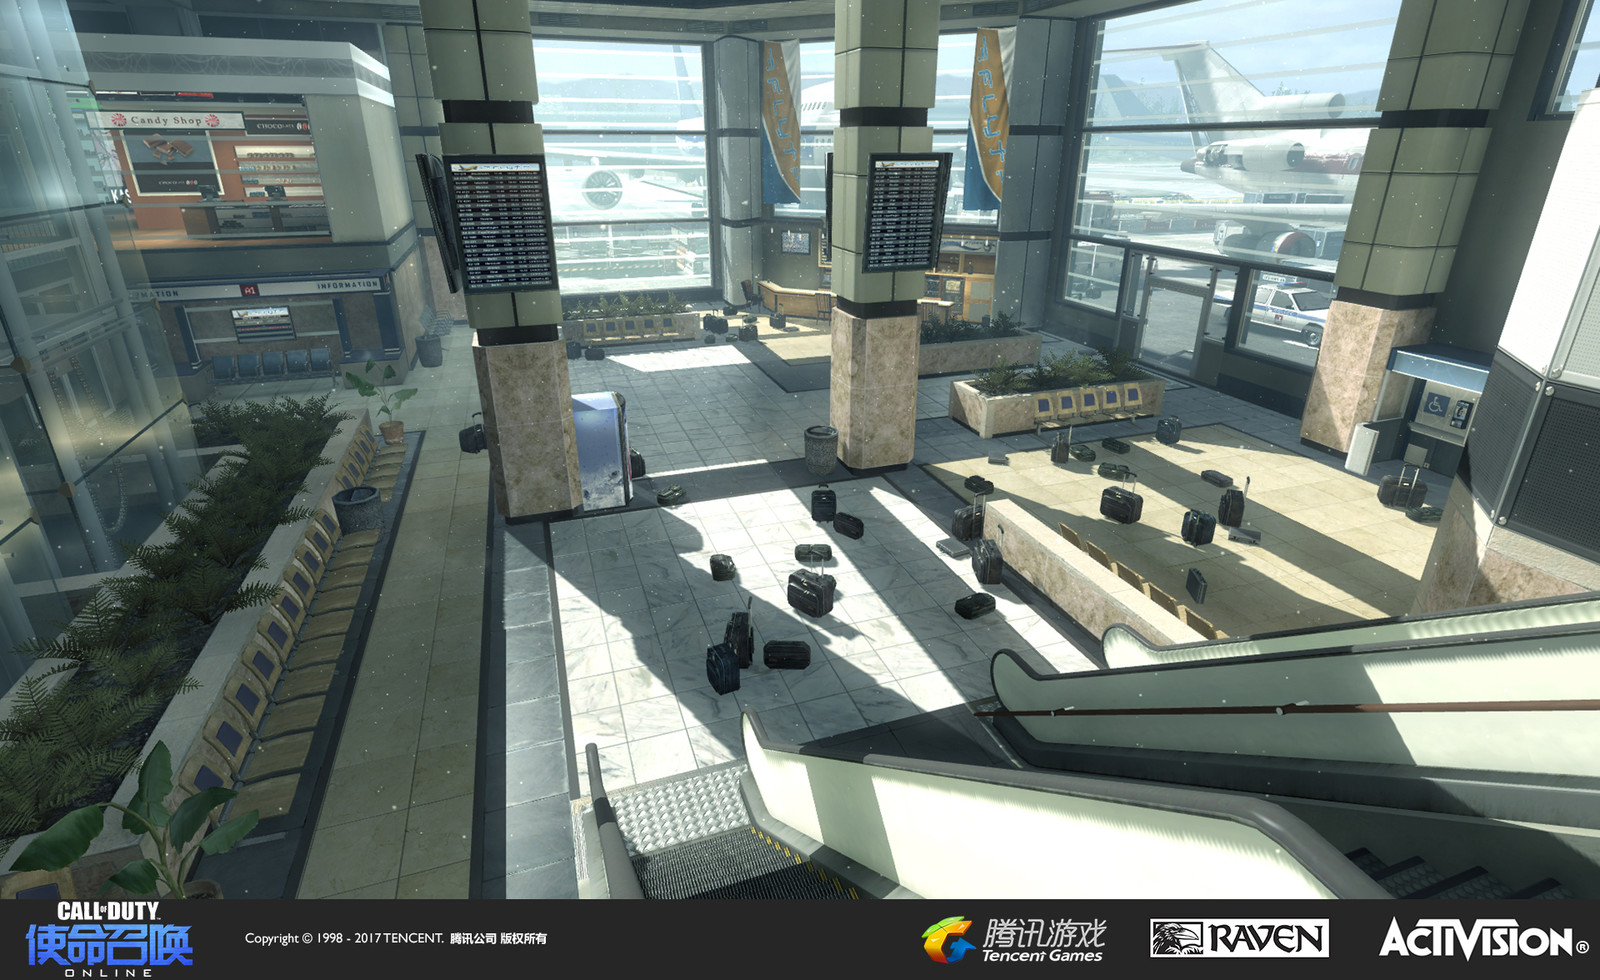 Terminal: A re-creation of the muliplayer map in Modern Warfare 2. I recreated the floor, color scheme, and set dress in this area.